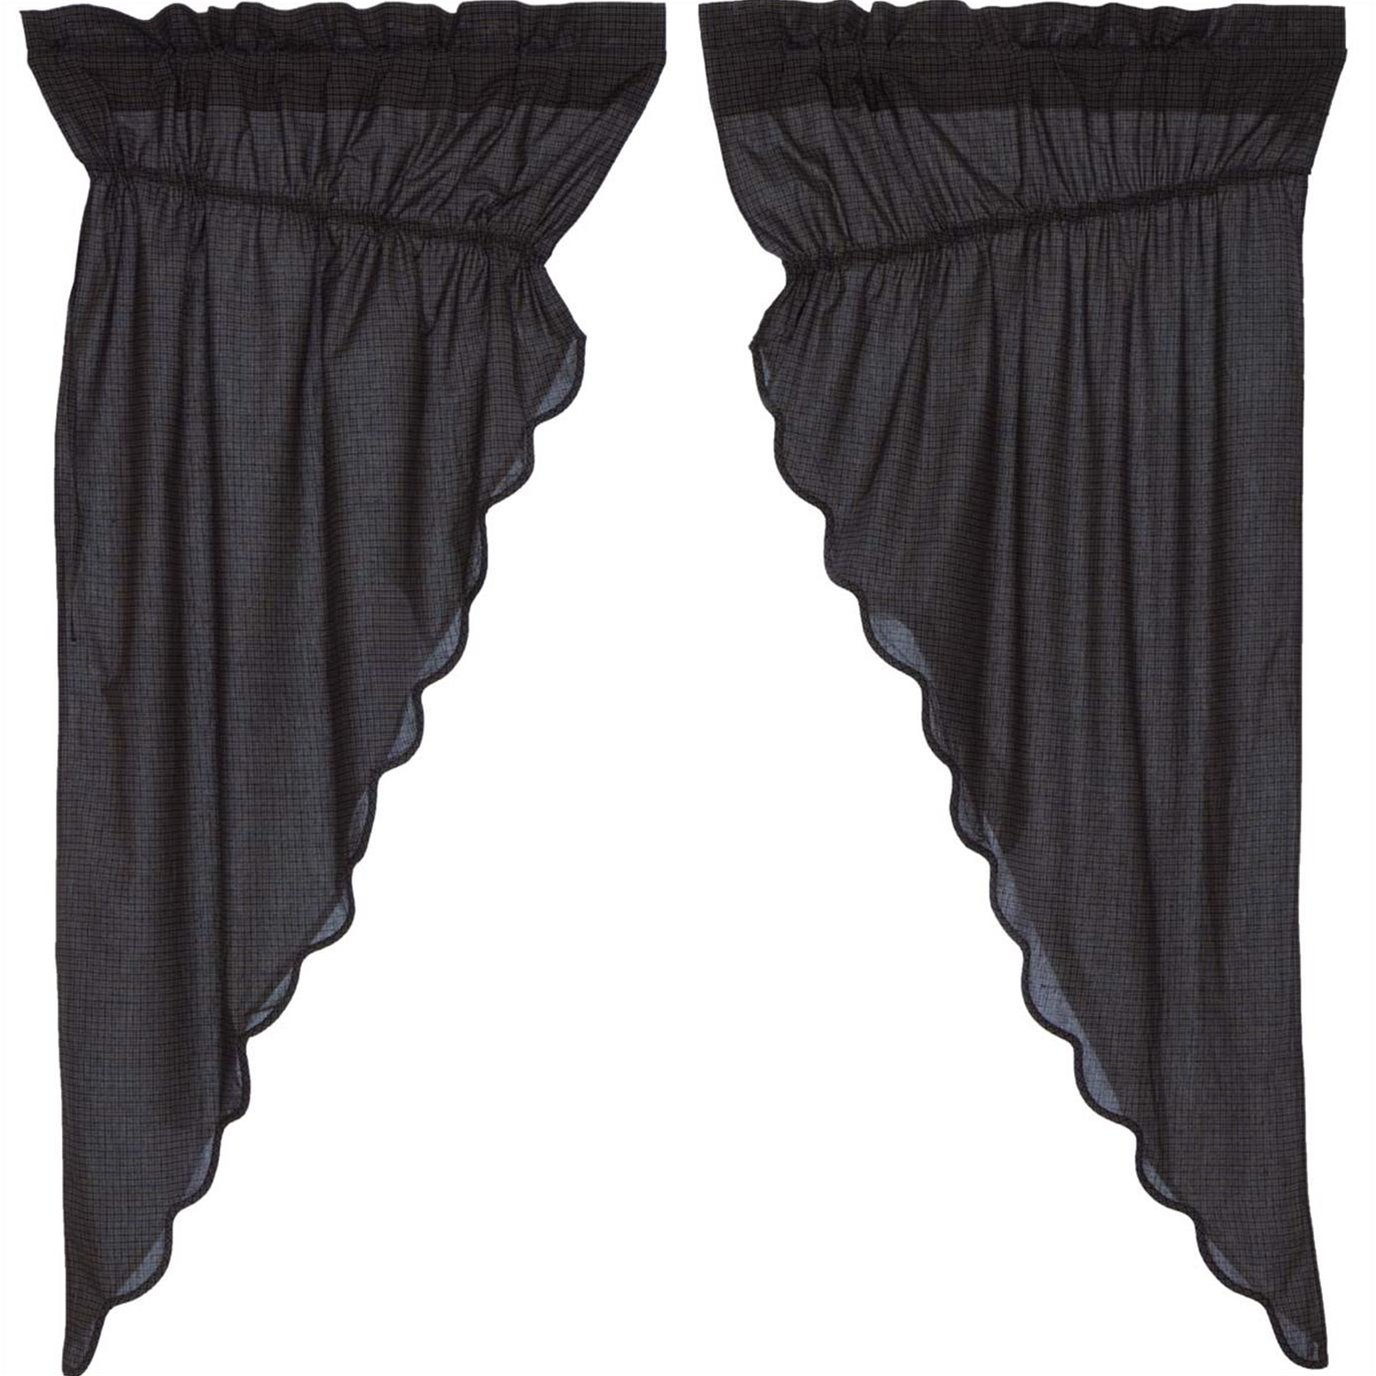 Arlington Prairie Short Panel Scalloped Set of 2 63x36x18